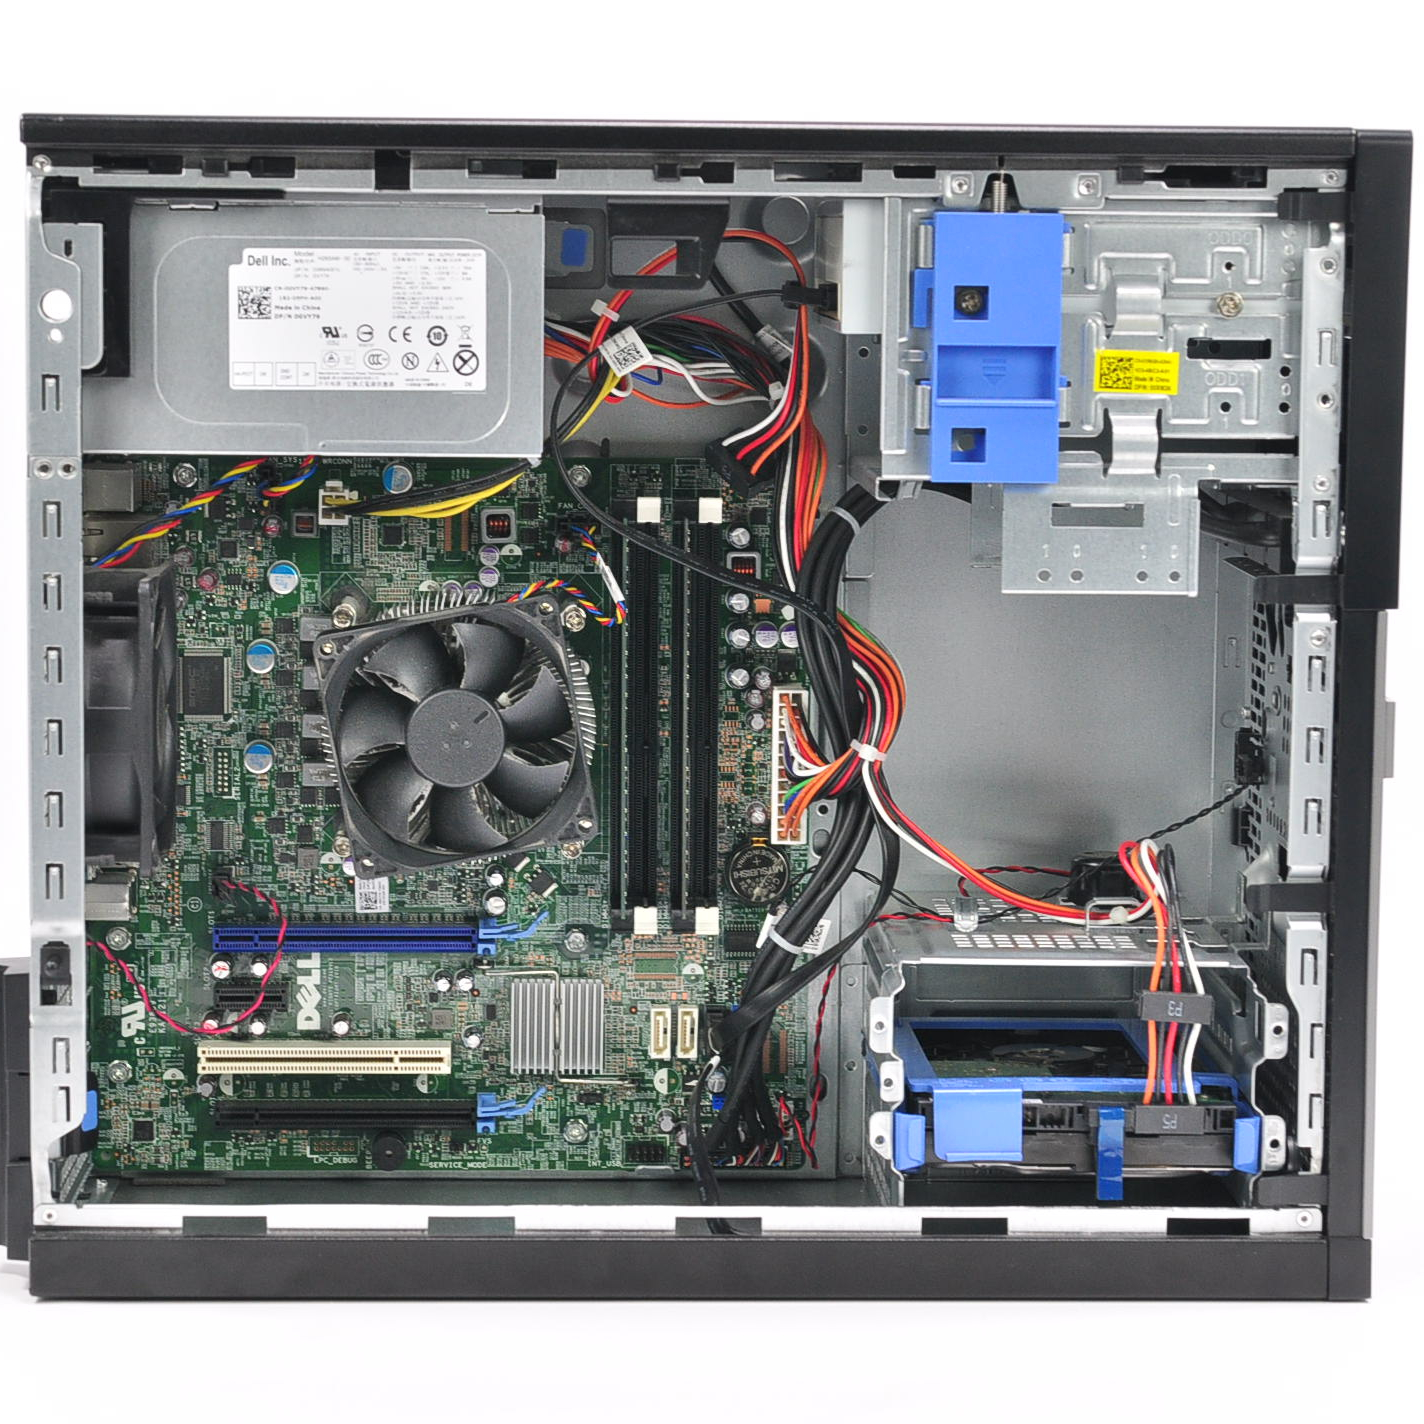 Dell Optiplex 7010 Sff 3rd Gen Quad Core I5 3550 8gb 500gb Dvdrw Windows 7 Professional Desktop Pc  puter moreover Watch further Dell Wiring Diagram For Inspiron 530 together with Dell Optiplex 755 Service Manual Free Software And Shareware in addition Watch. on dell optiplex 790 motherboard